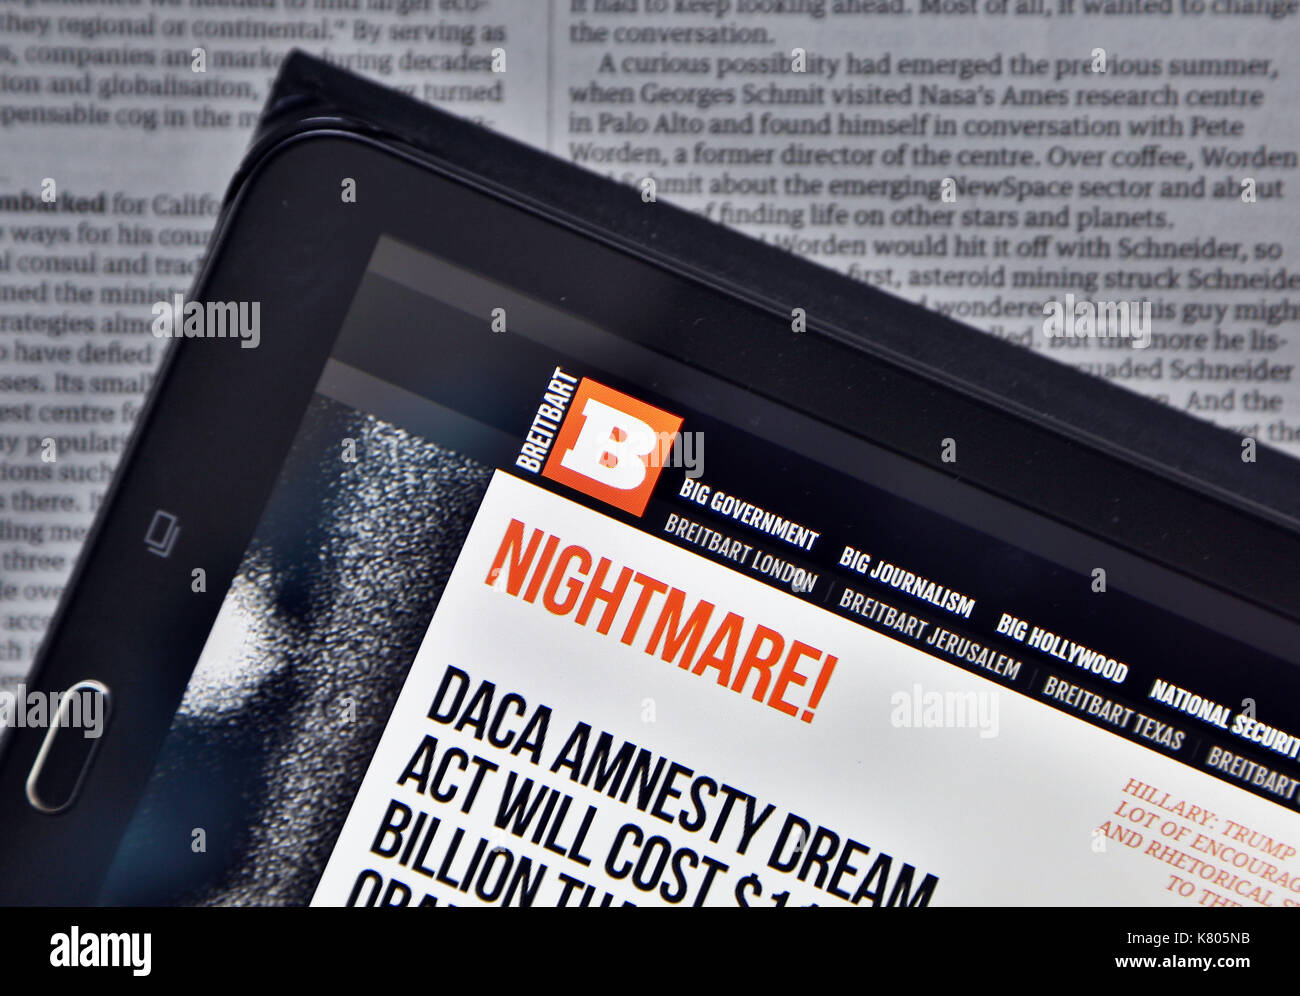 Breitbart News website displayed on a tablet device, London - Stock Image